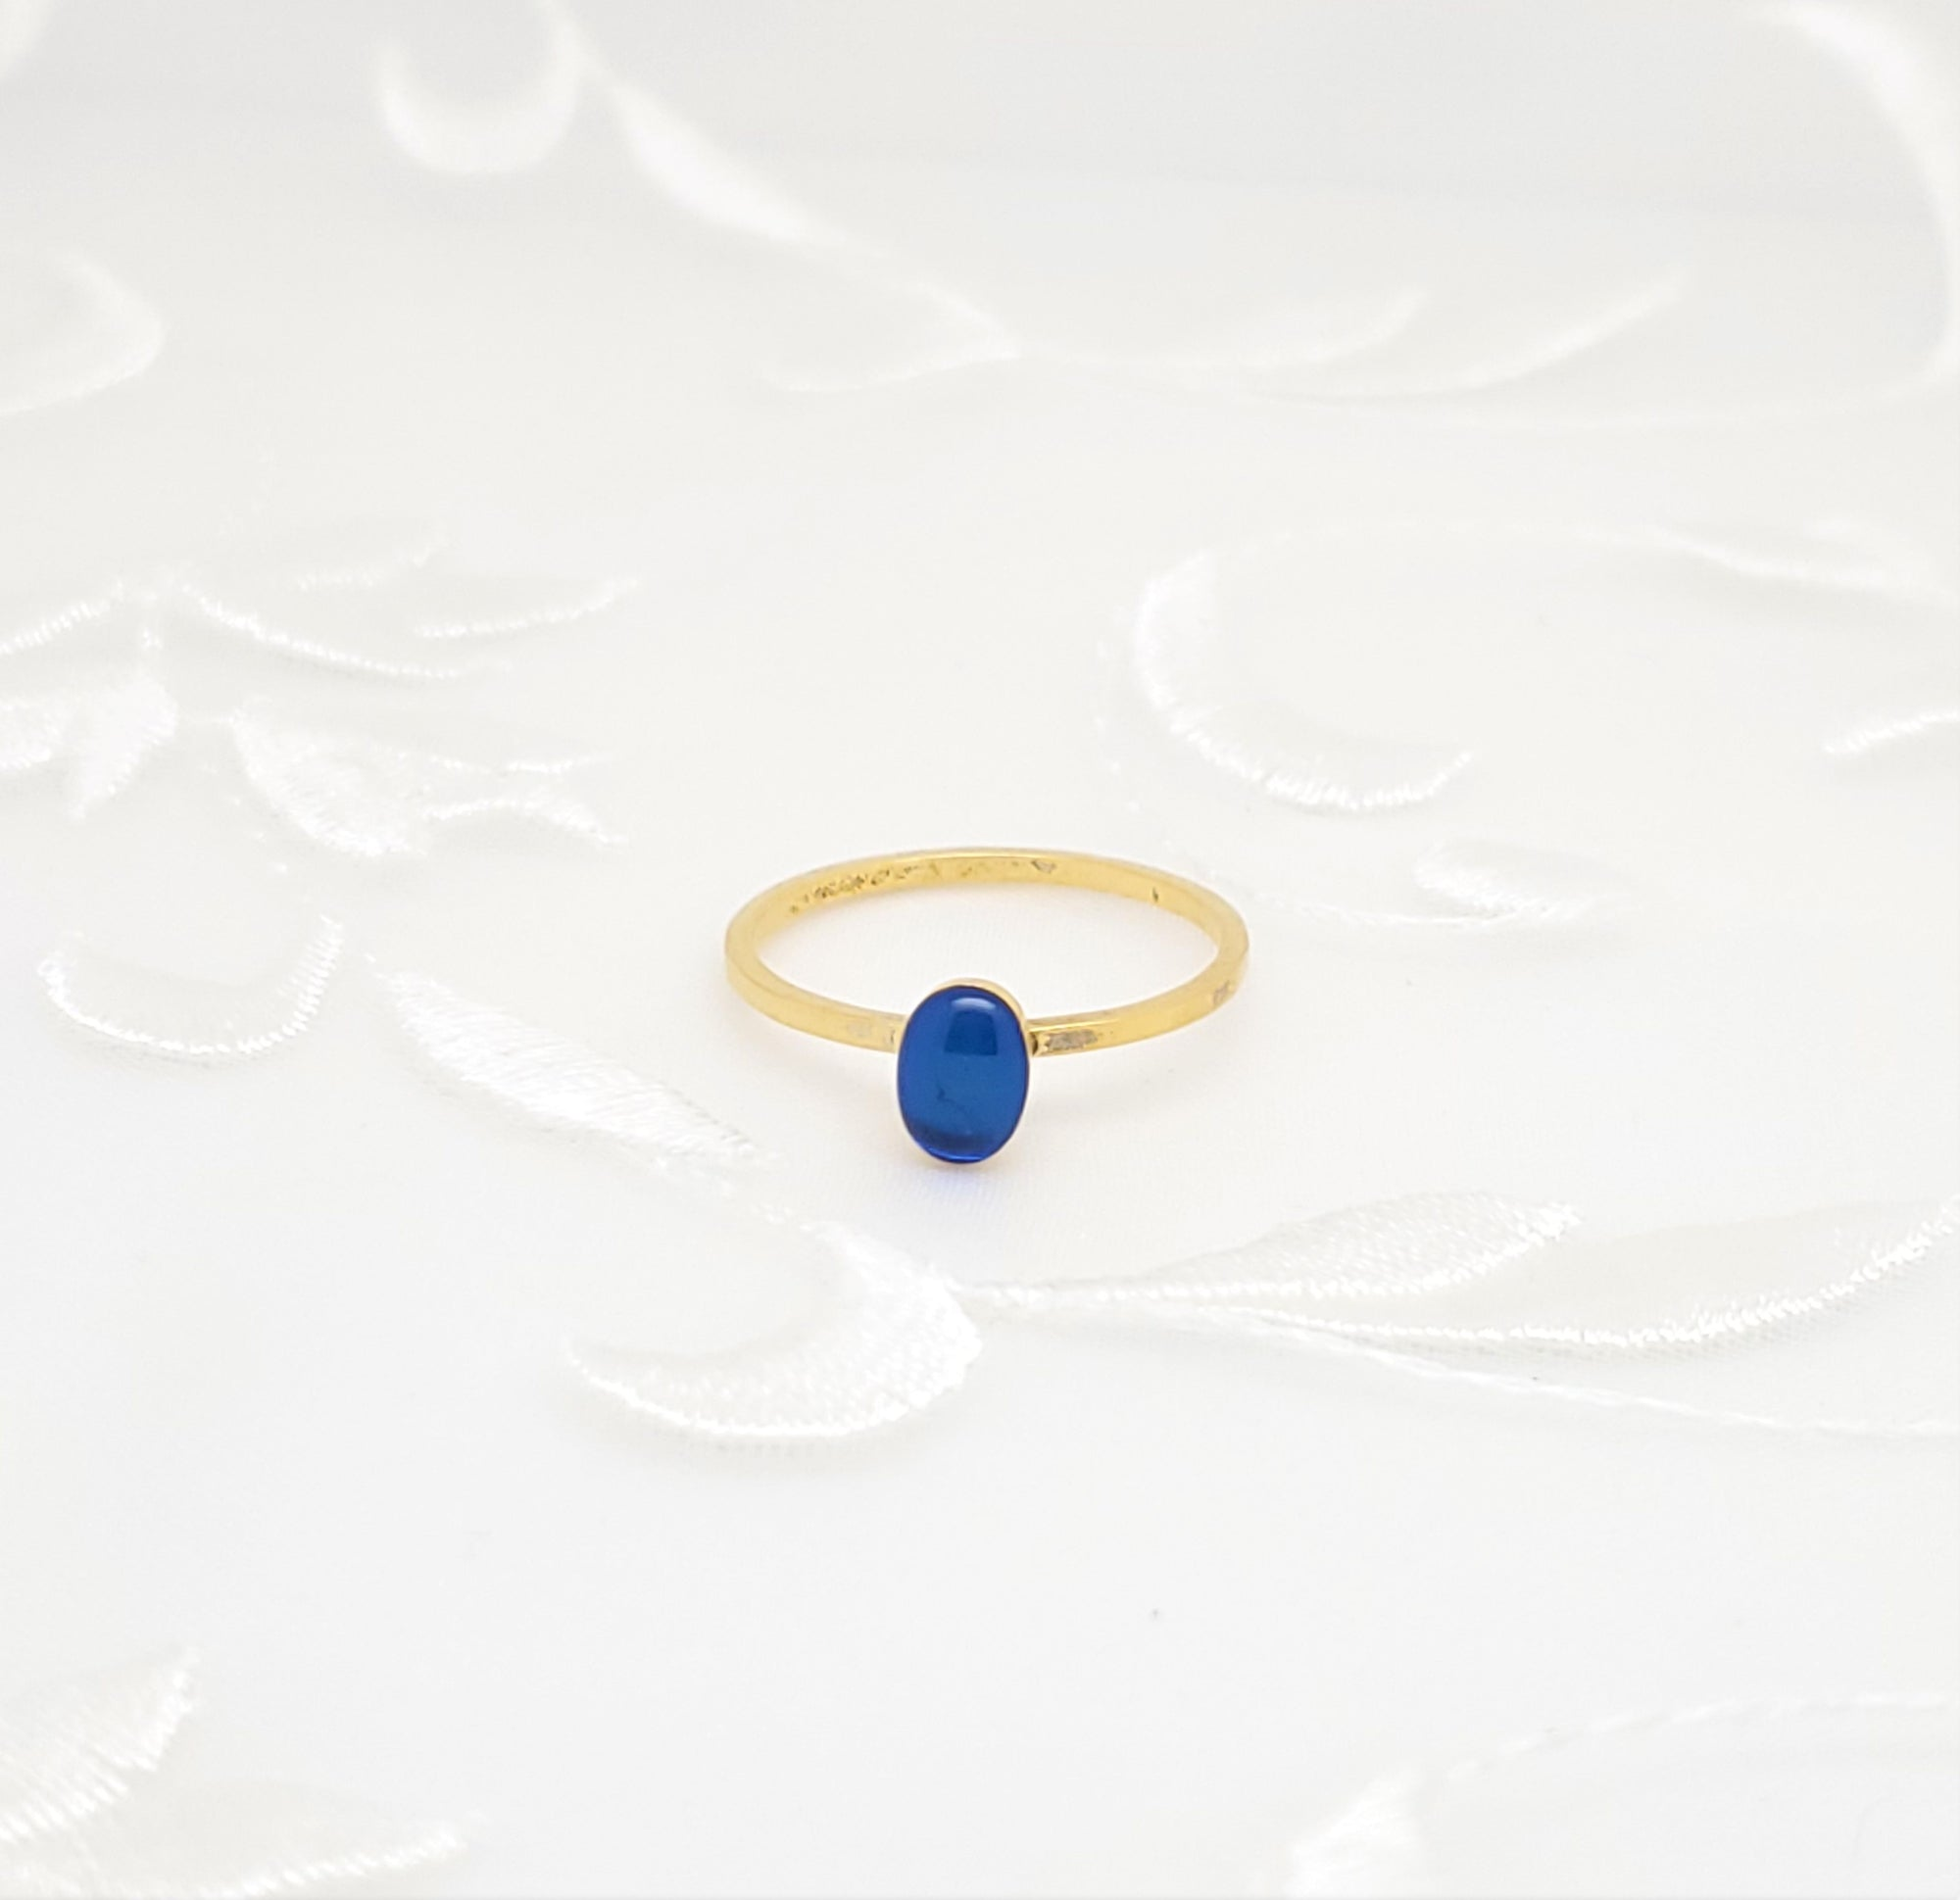 Antique Gold Oval Ring with Transparent Sapphire Blue Resin